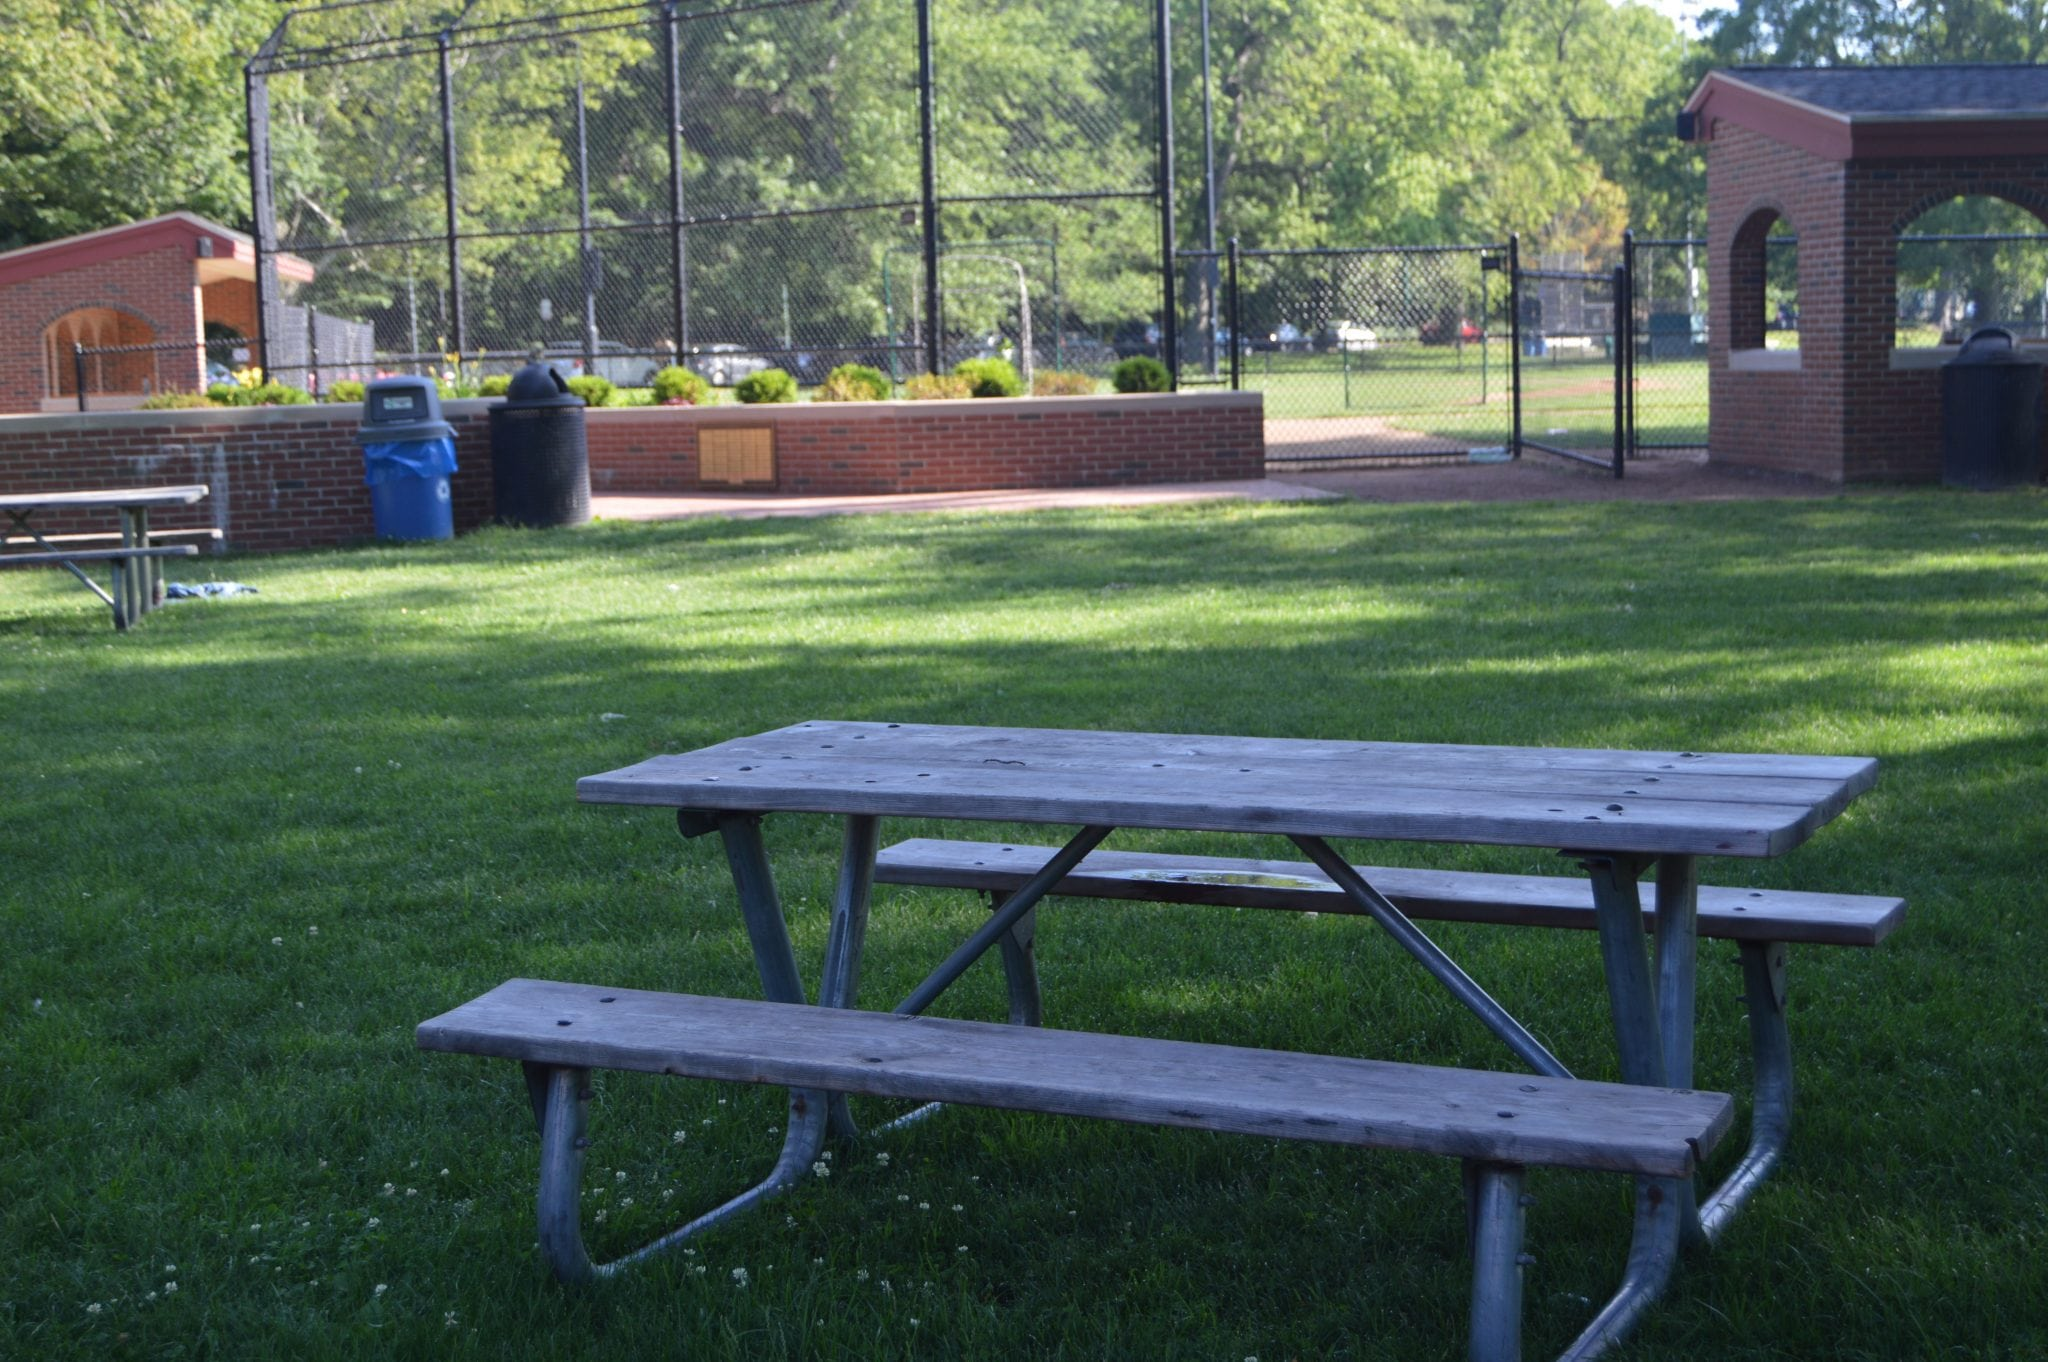 Picnic near Reidy Field baseball field, just watch out for foul balls. Behind Whole Foods.